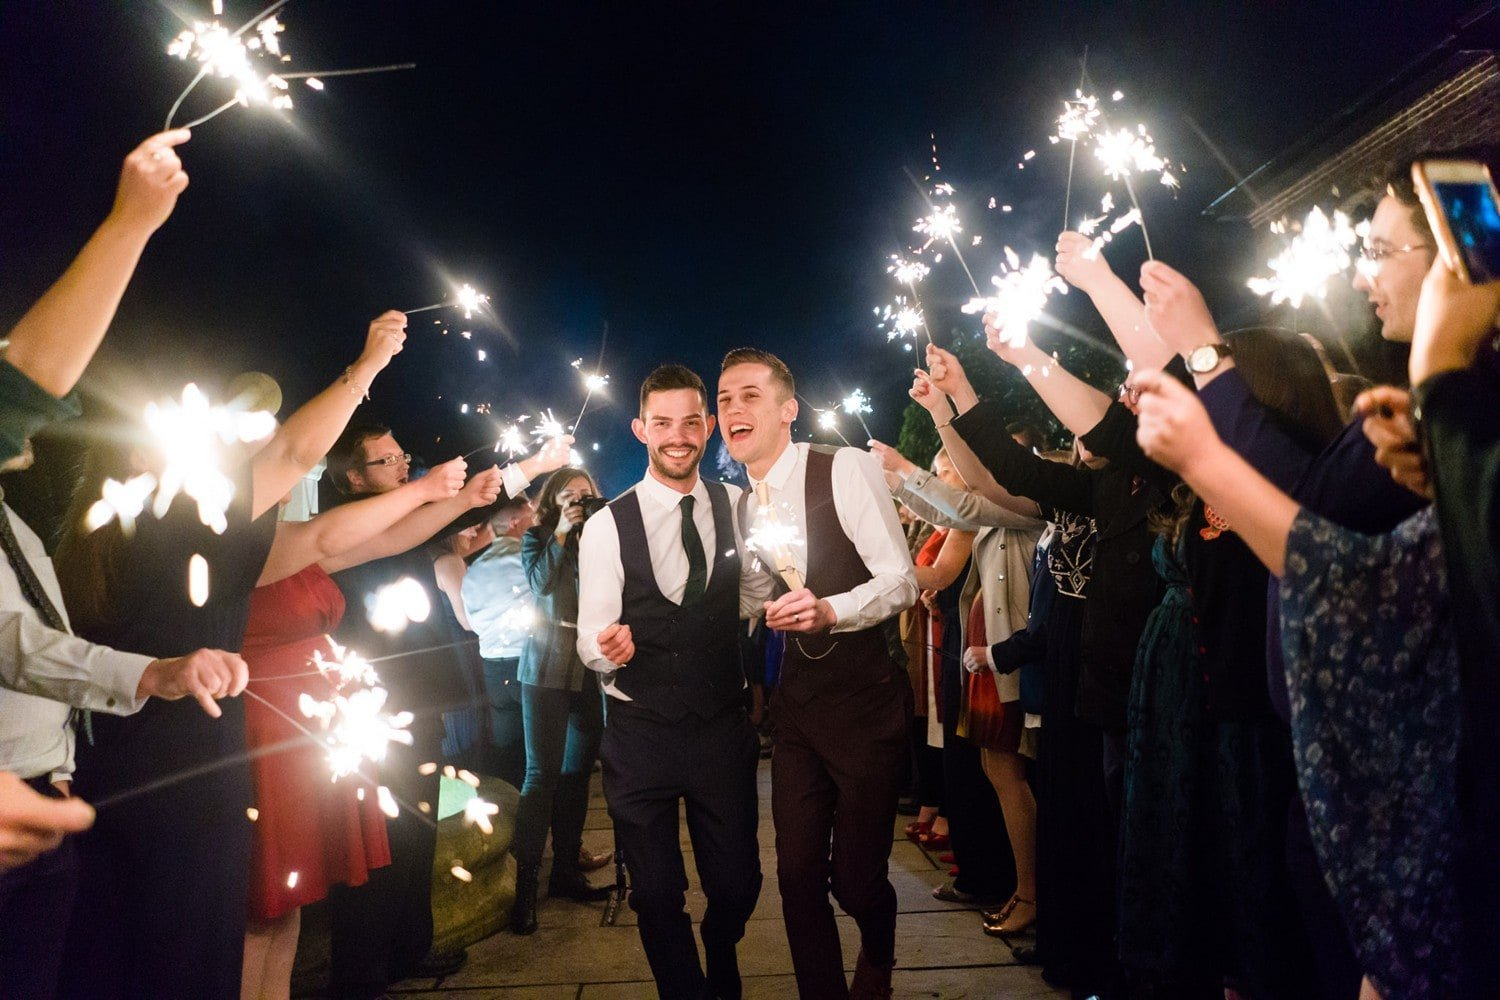 Sparkler wedding photographs